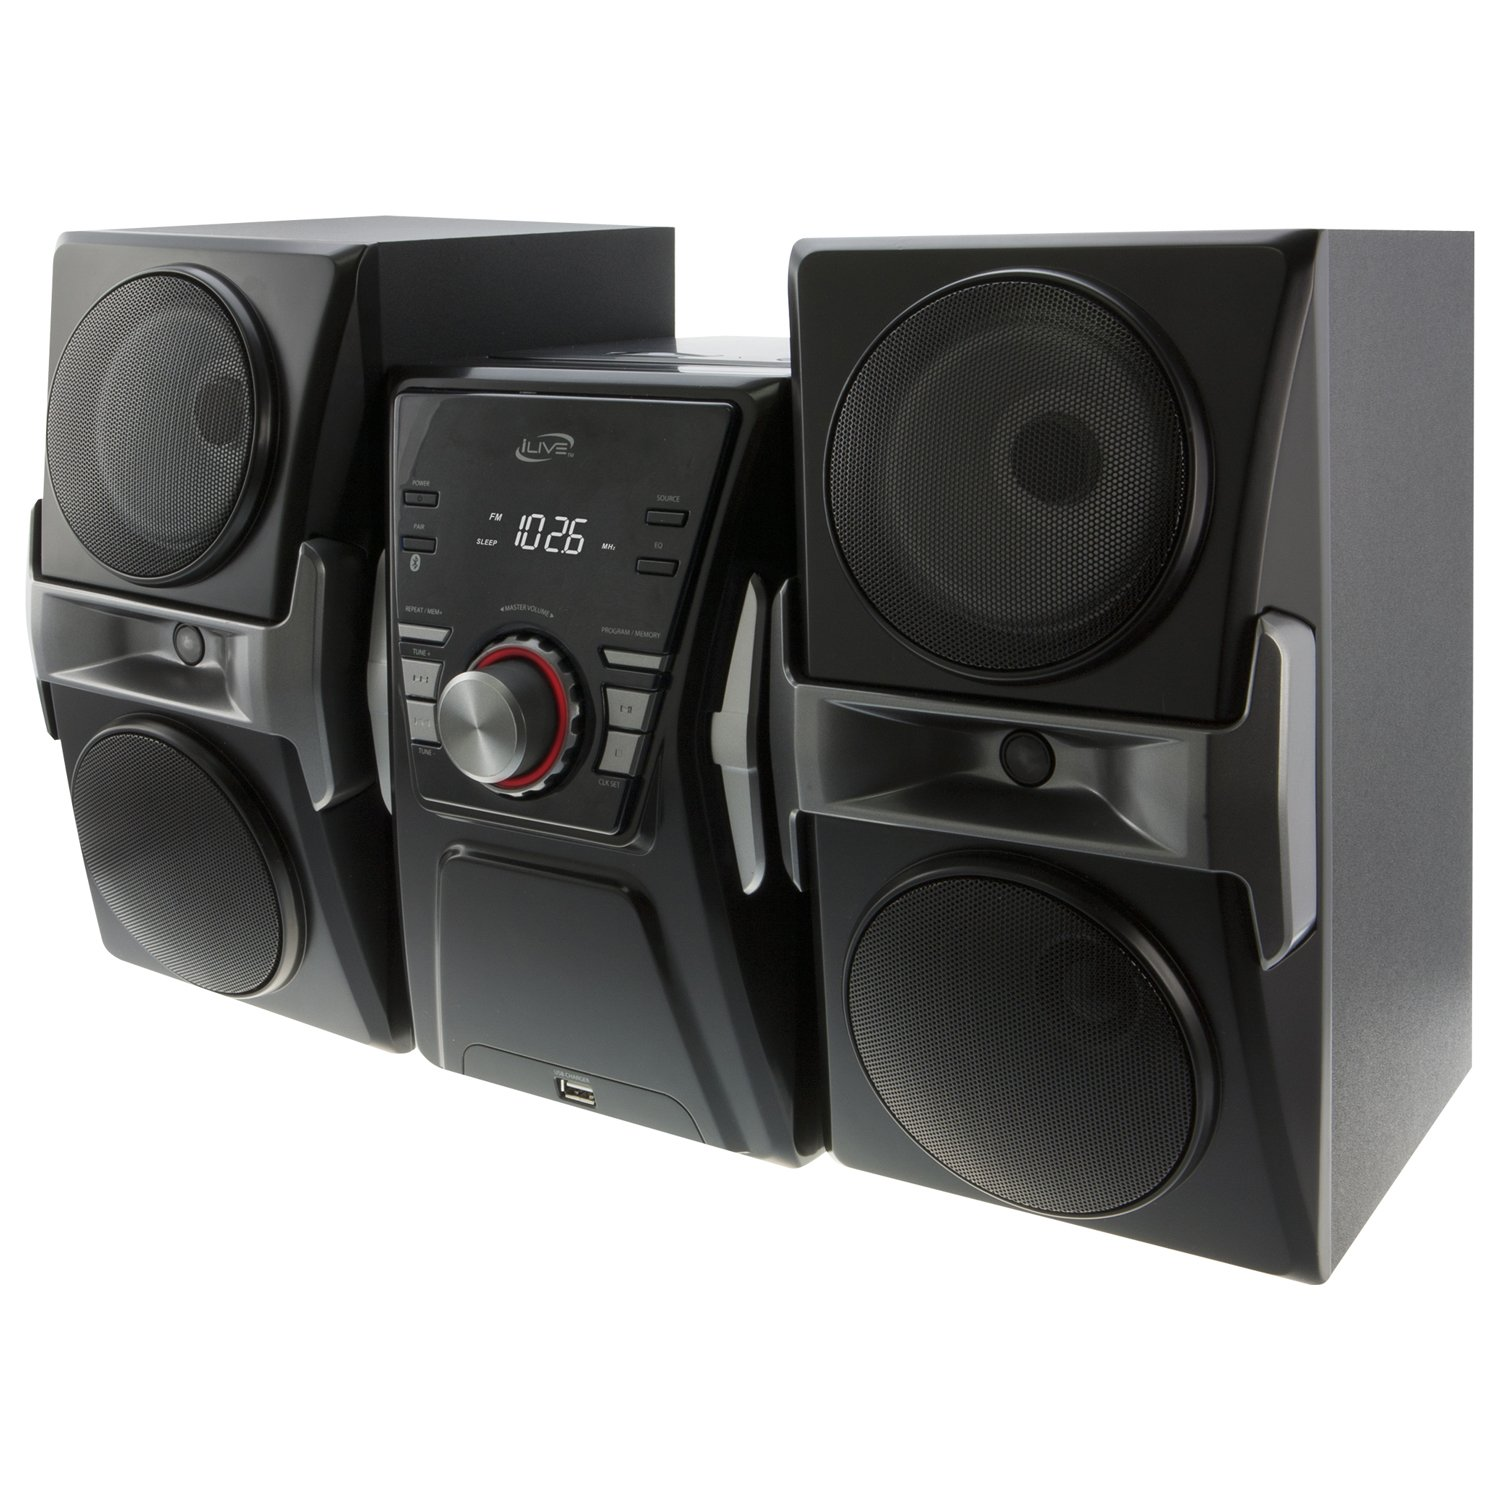 iLive IHB624B Bluetooth CD and Radio Home Music System with Color Changing Lights, Includes Remote, Black by iLive